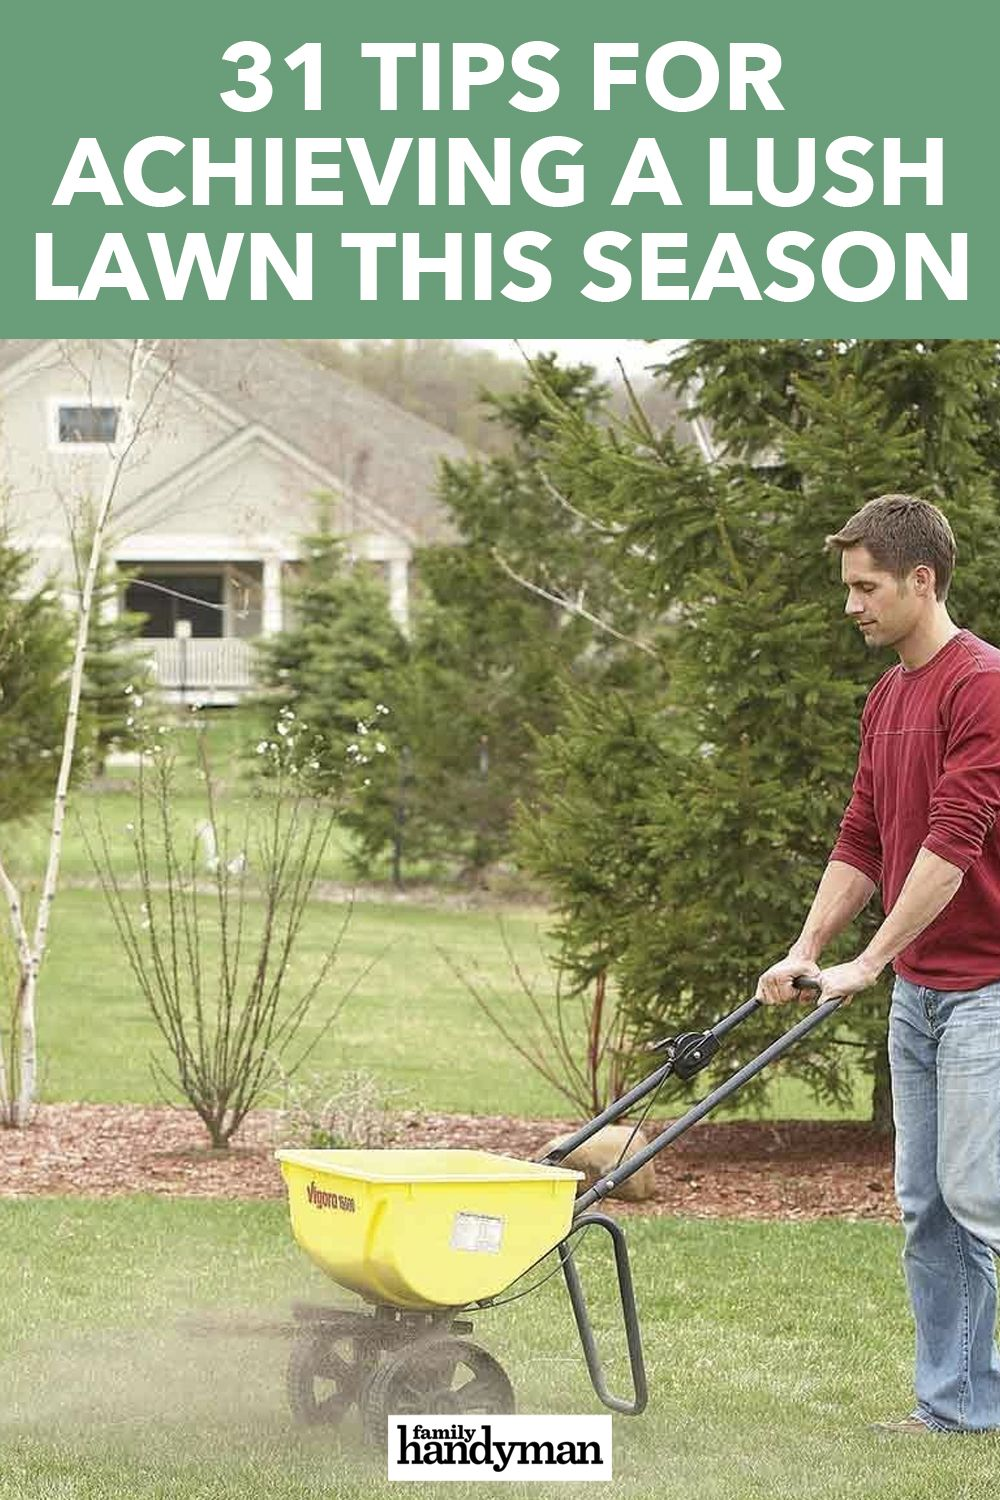 31 Tips For Achieving A Lush Lawn This Season In 2020 Lush Lawn Lawn Garden Hoe